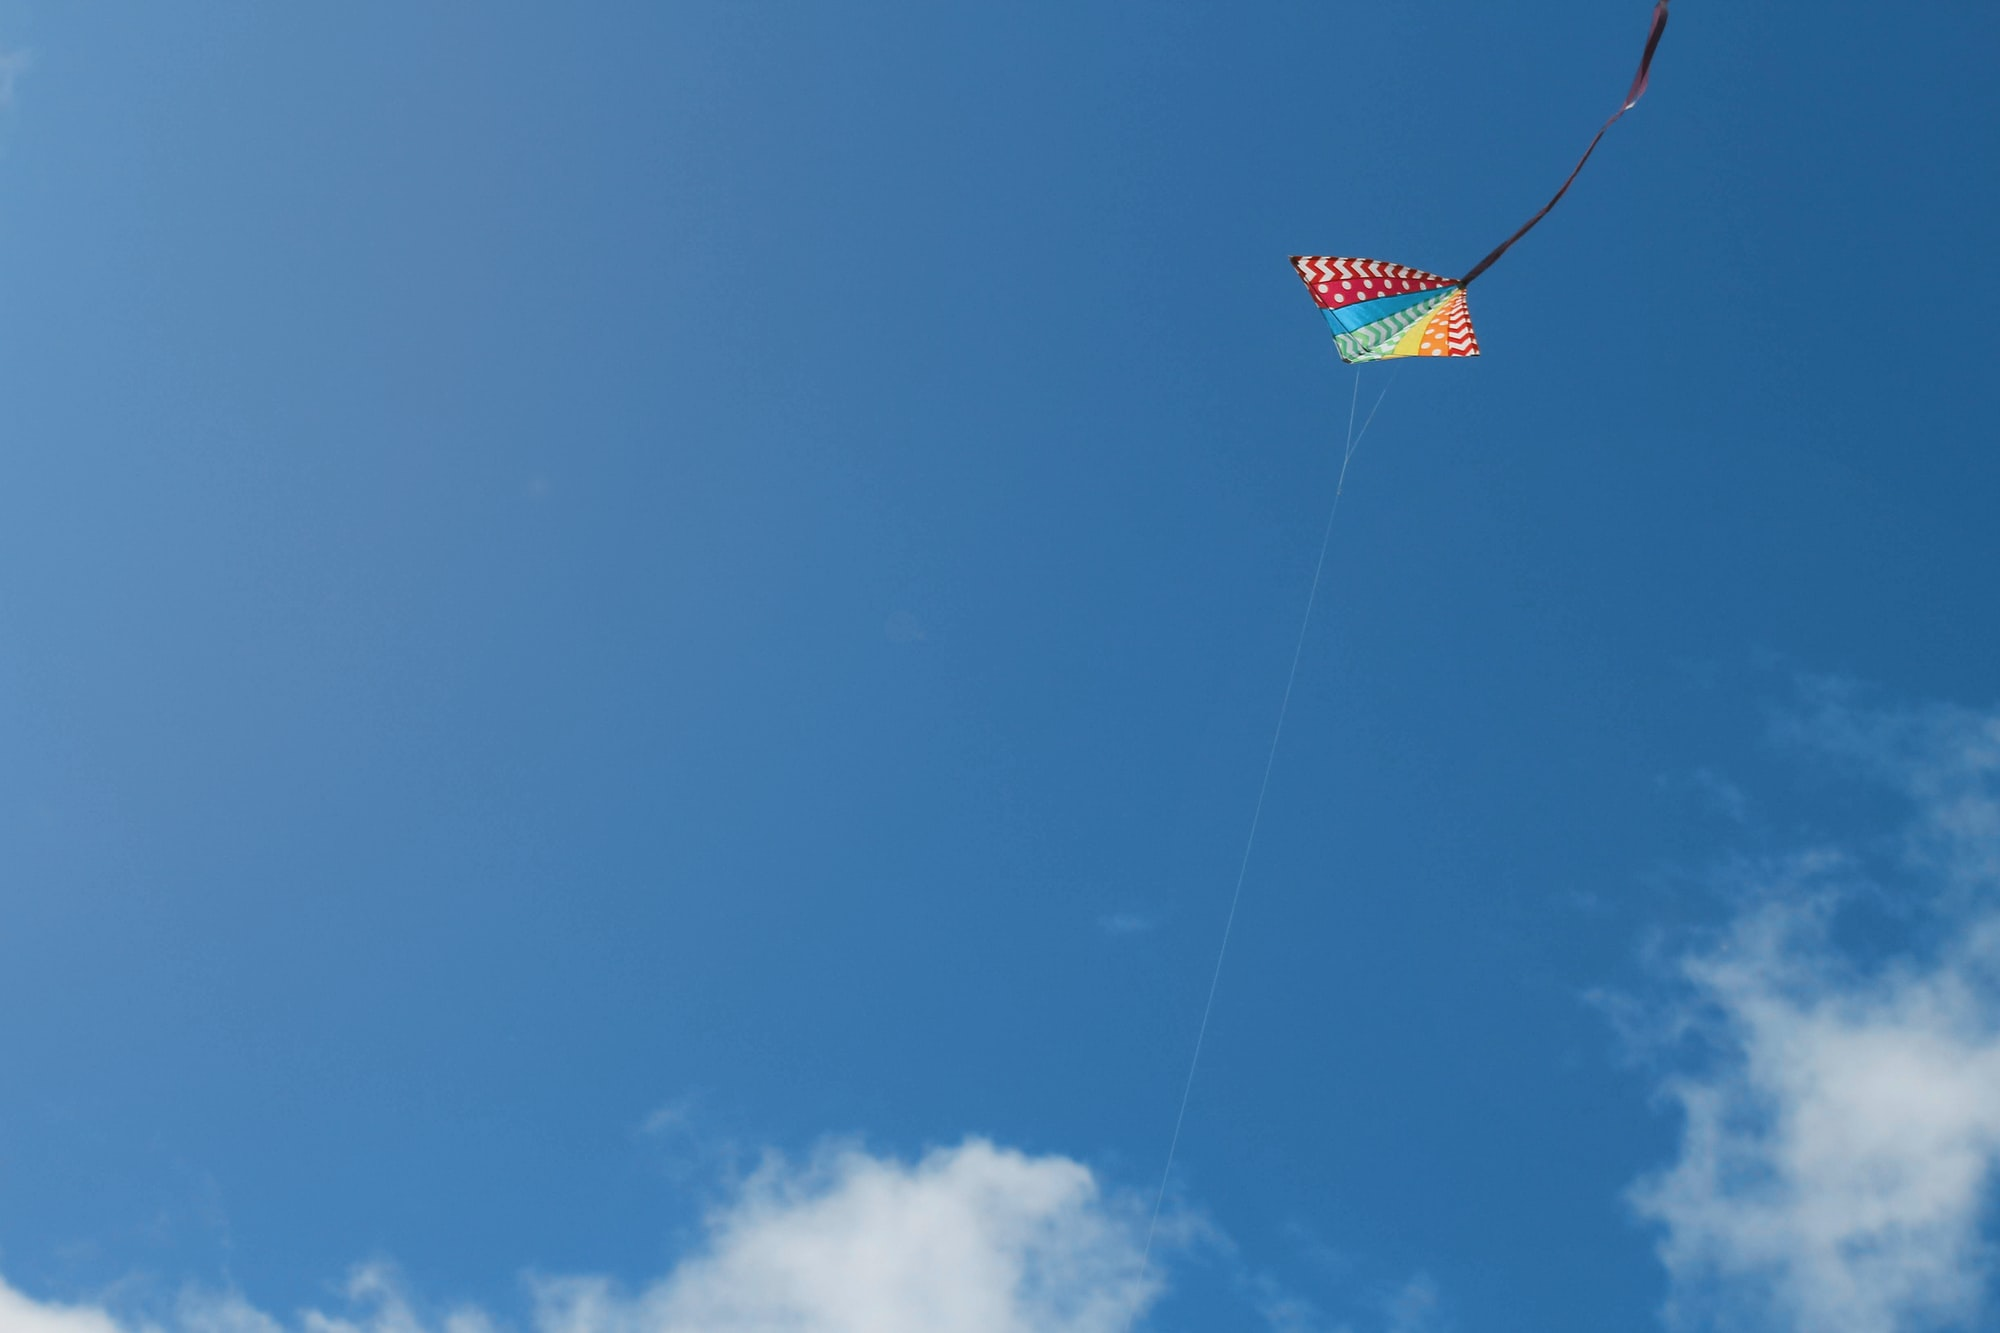 A colorful kite in a peaceful blue sky